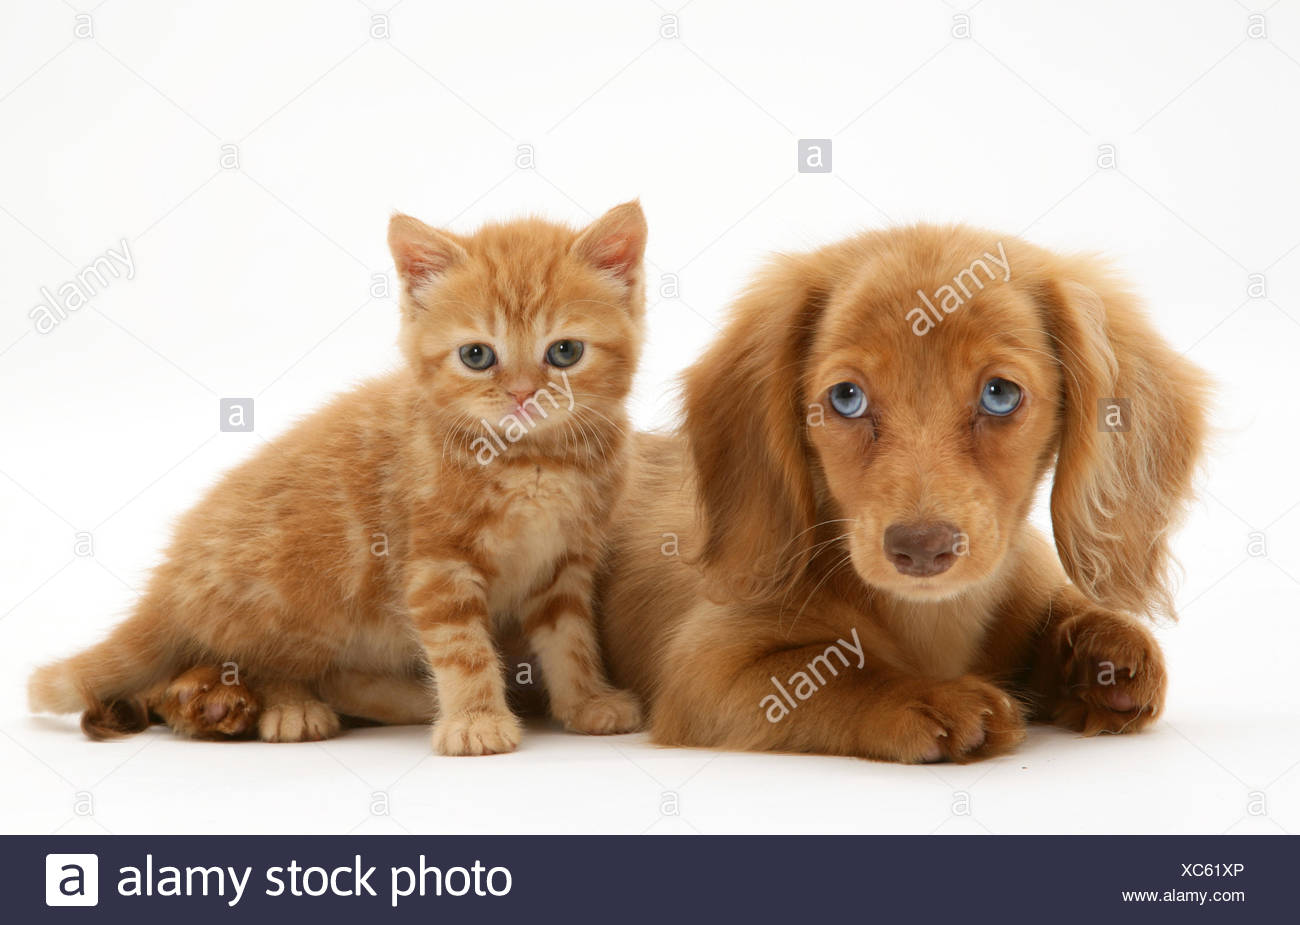 Cream Dapple Miniature Long-haired Dachshund puppy with British